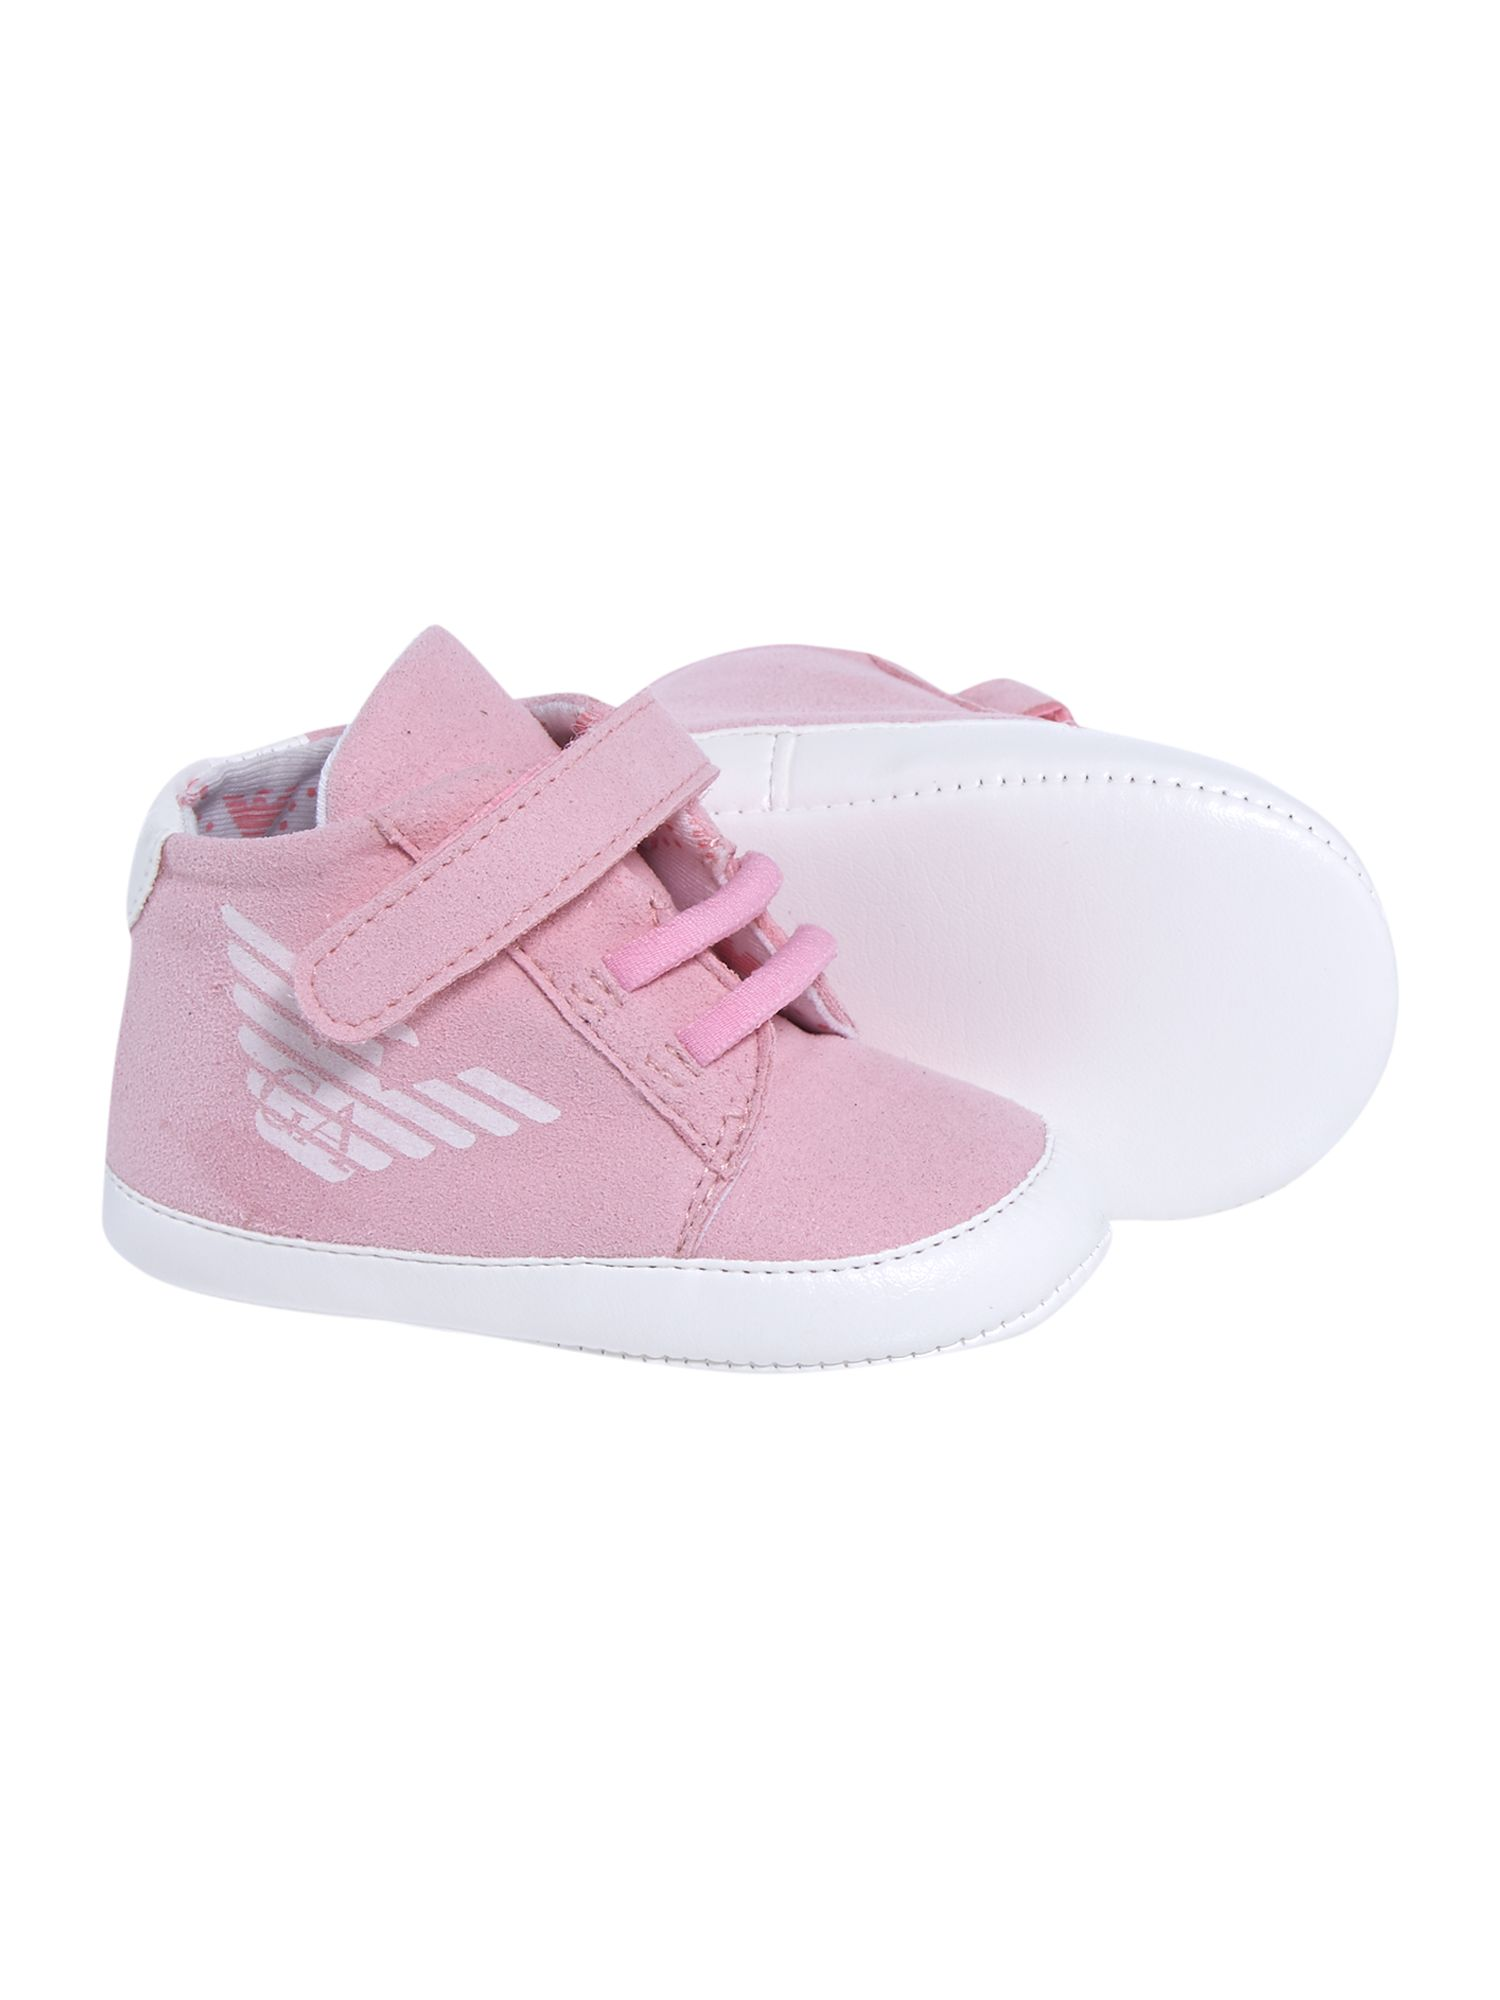 Babys high top trainer shoe